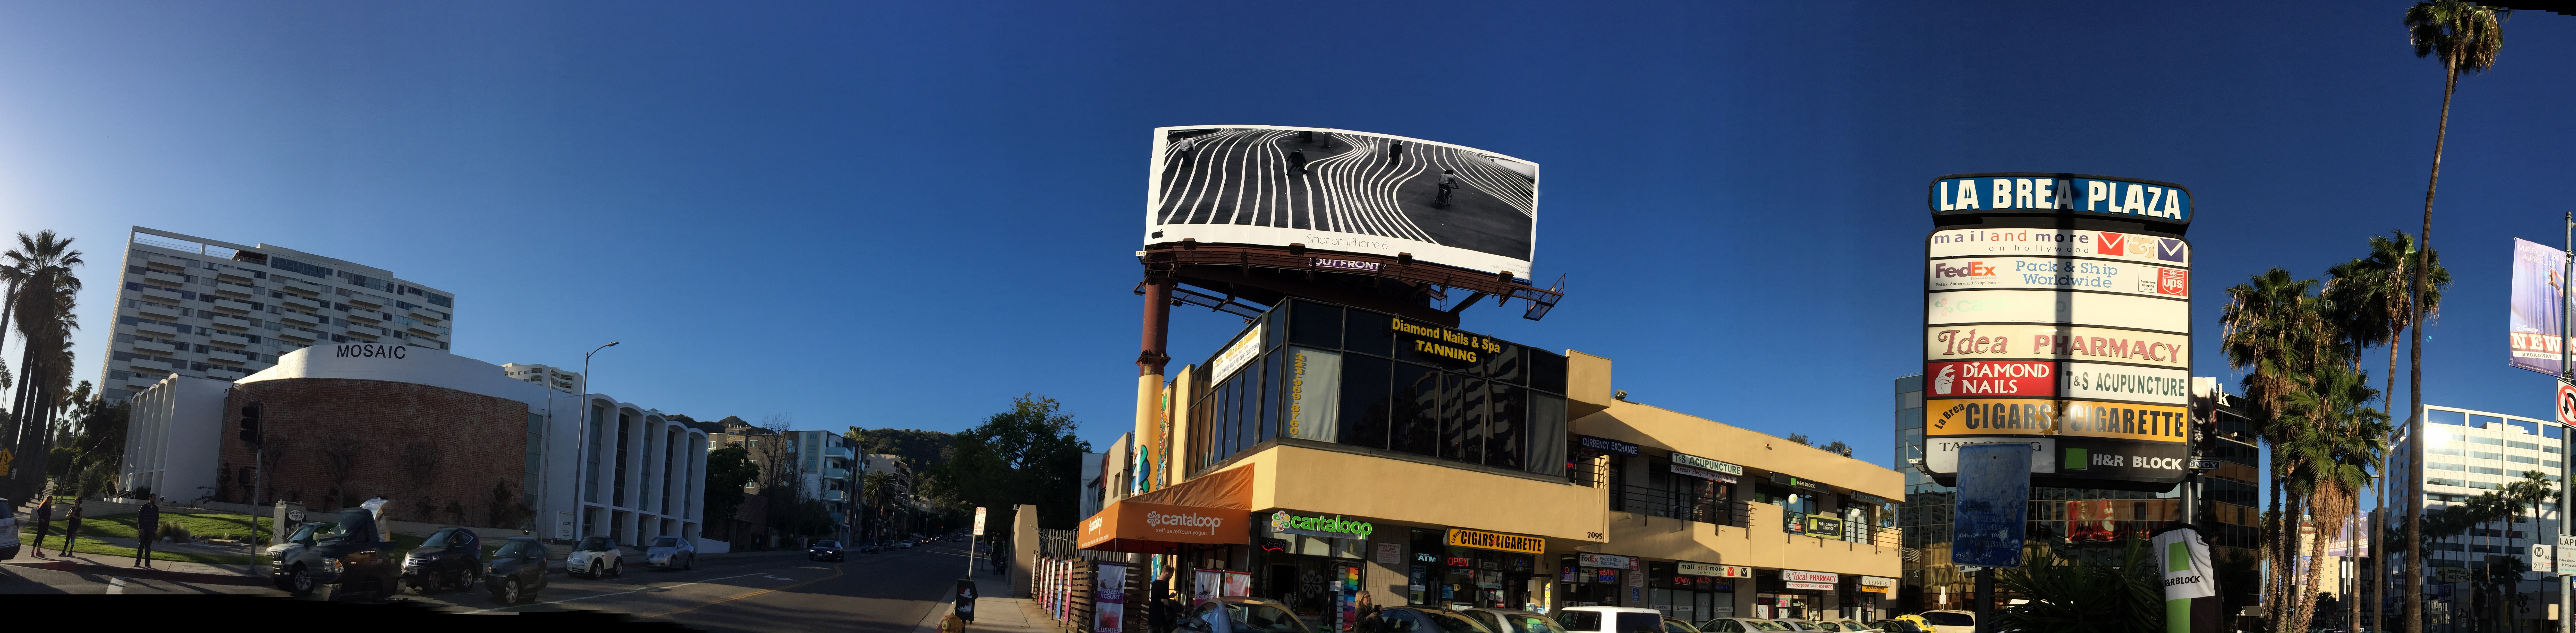 My photo on a billboard in Hollywood, Los Angeles